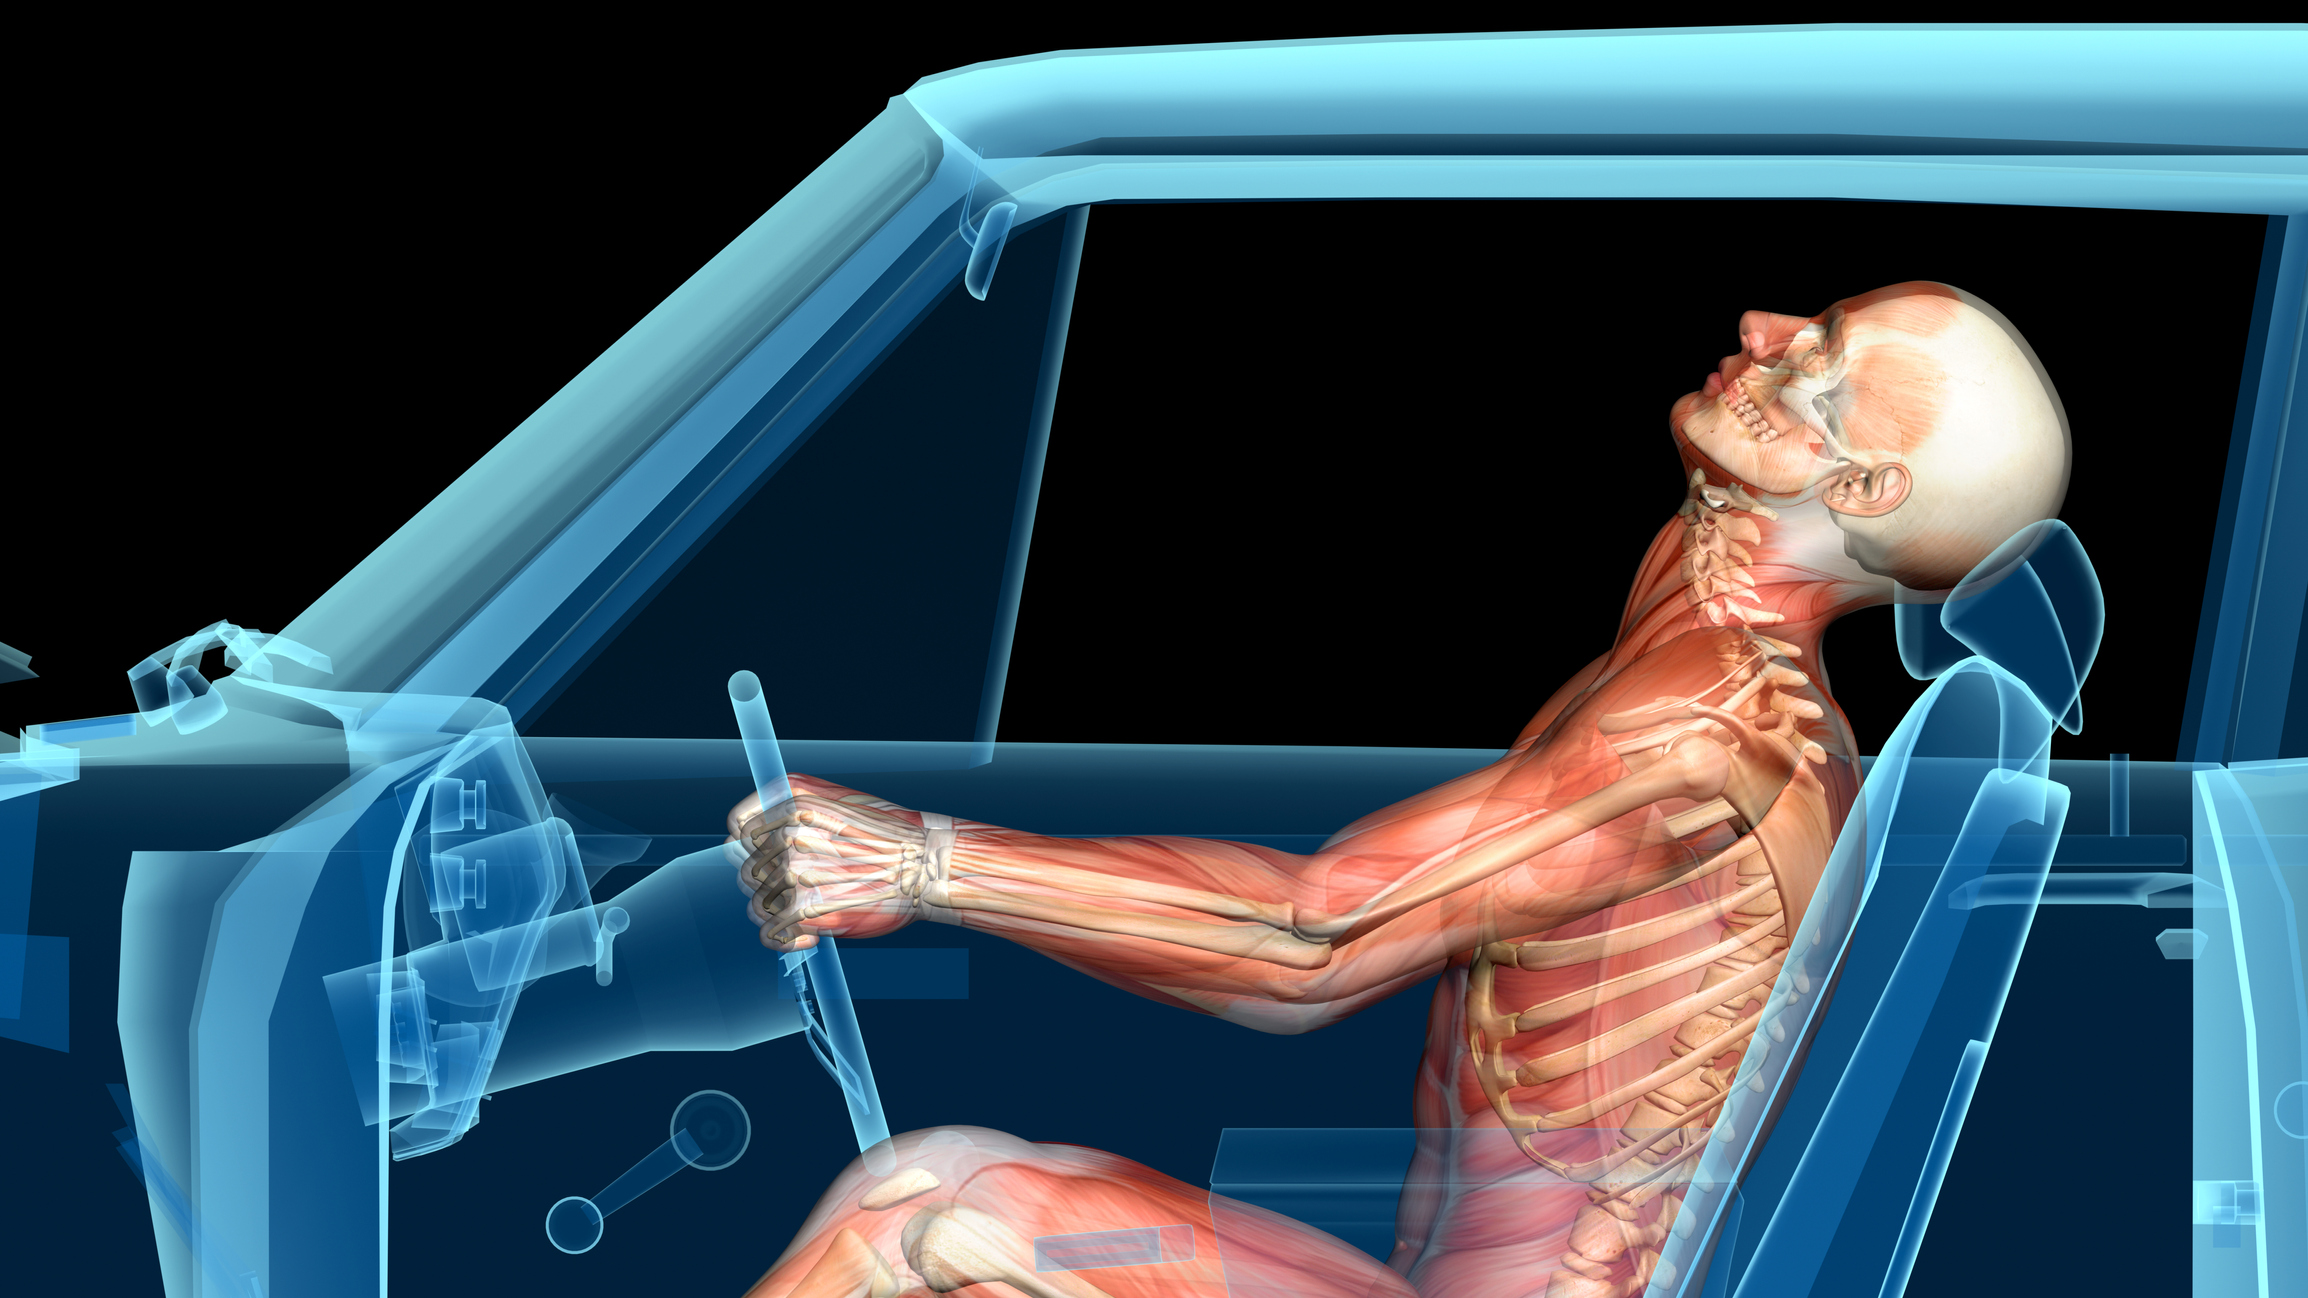 INJURIES FROM ACCIDENTS